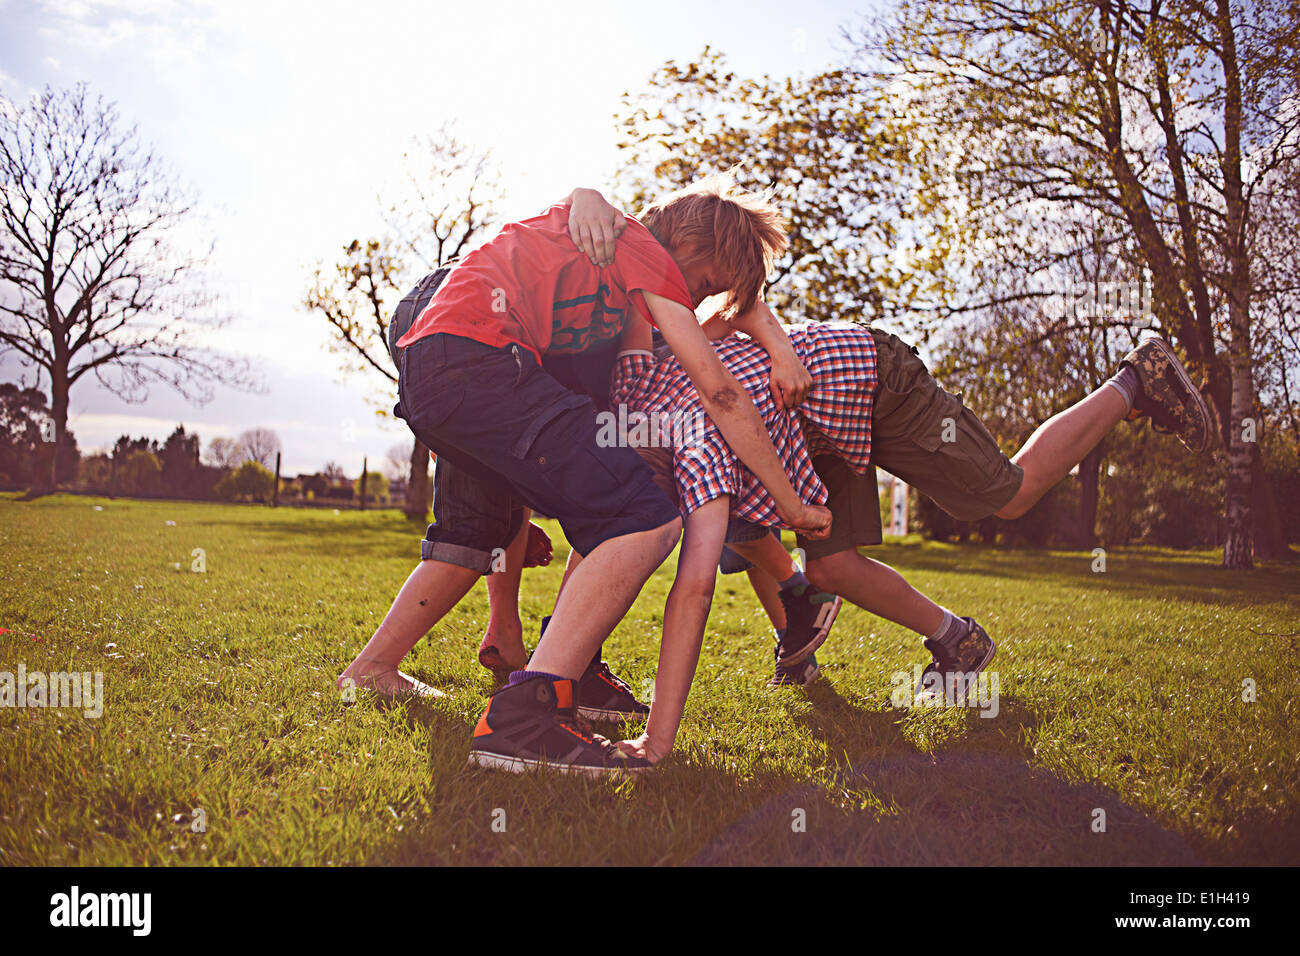 Boys play fighting on playing field Stock Photo